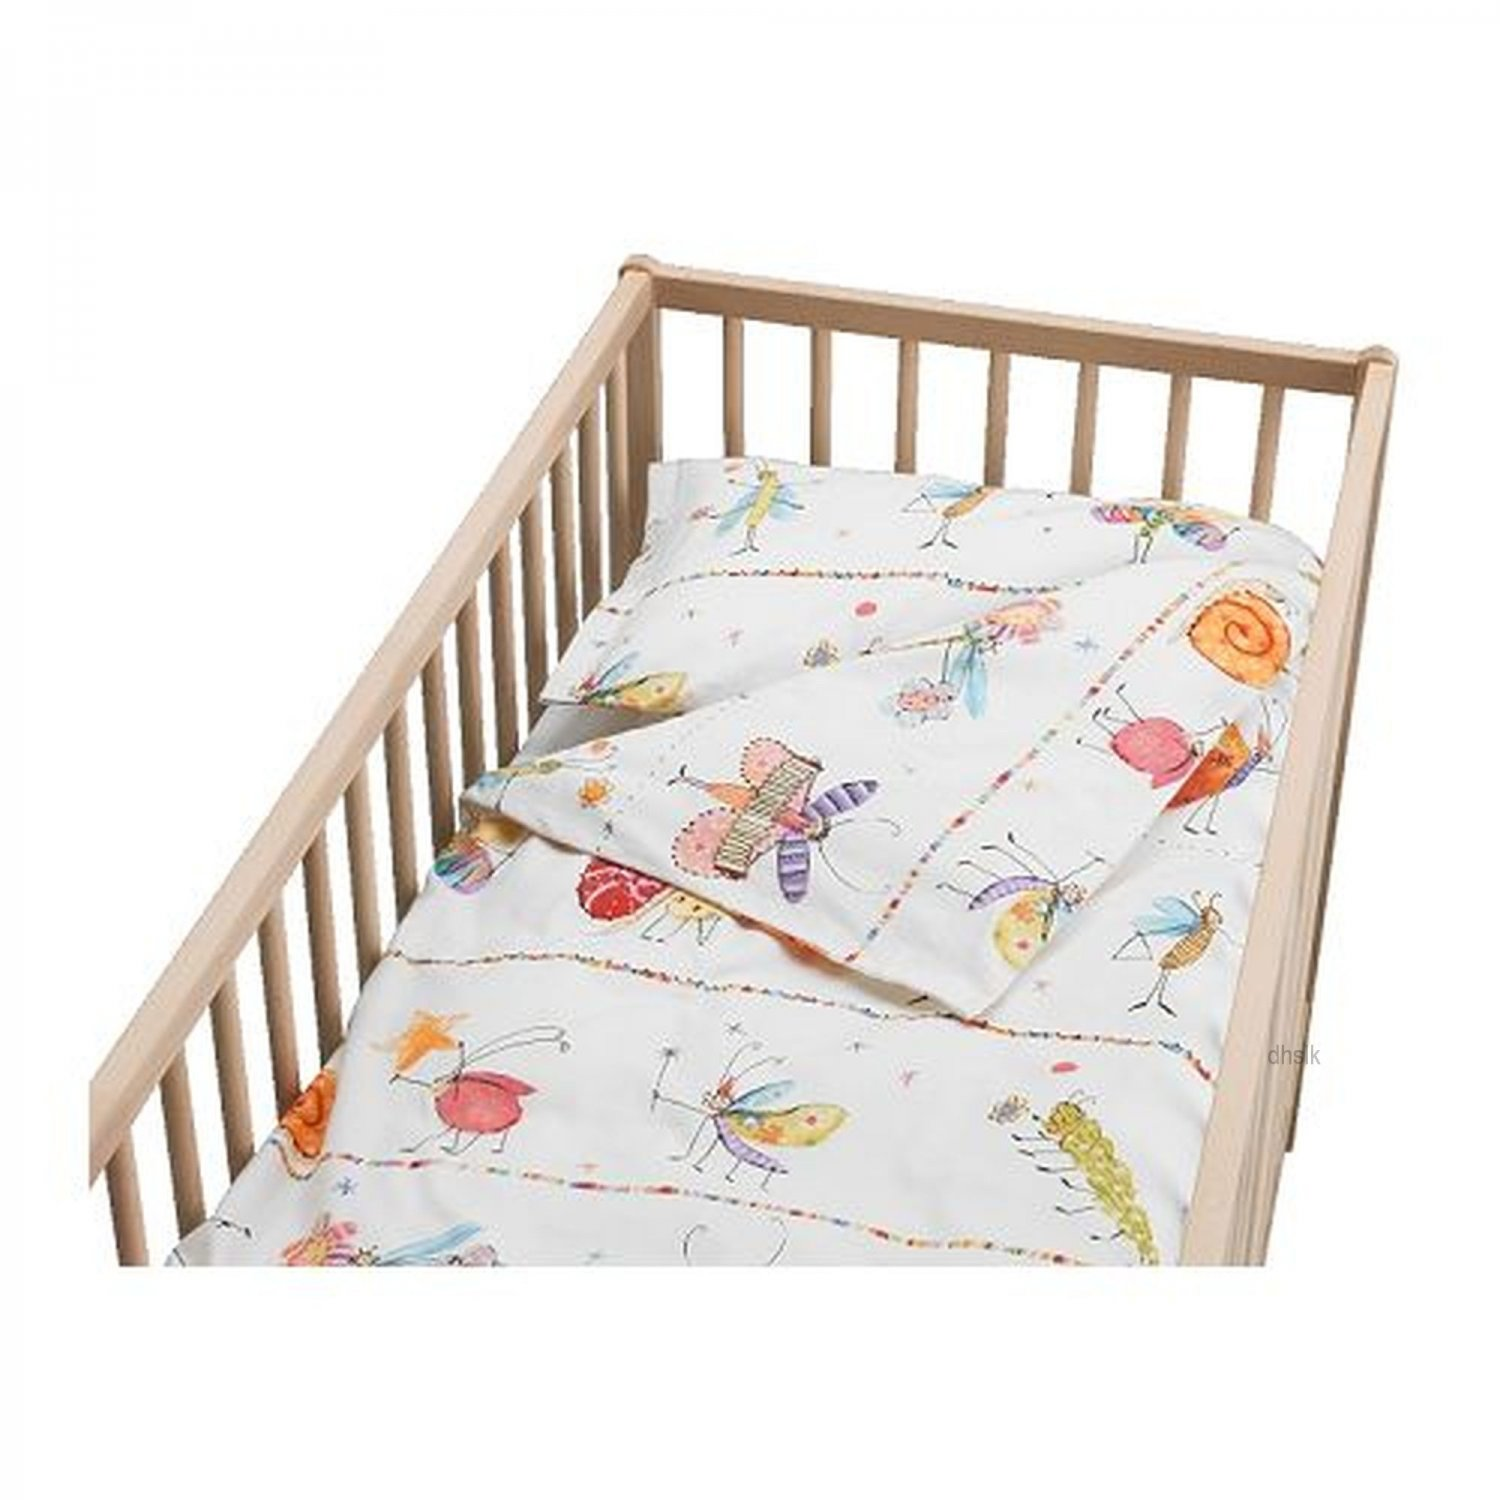 Ikea Baby Crib Bedding The Stuva Converts To A